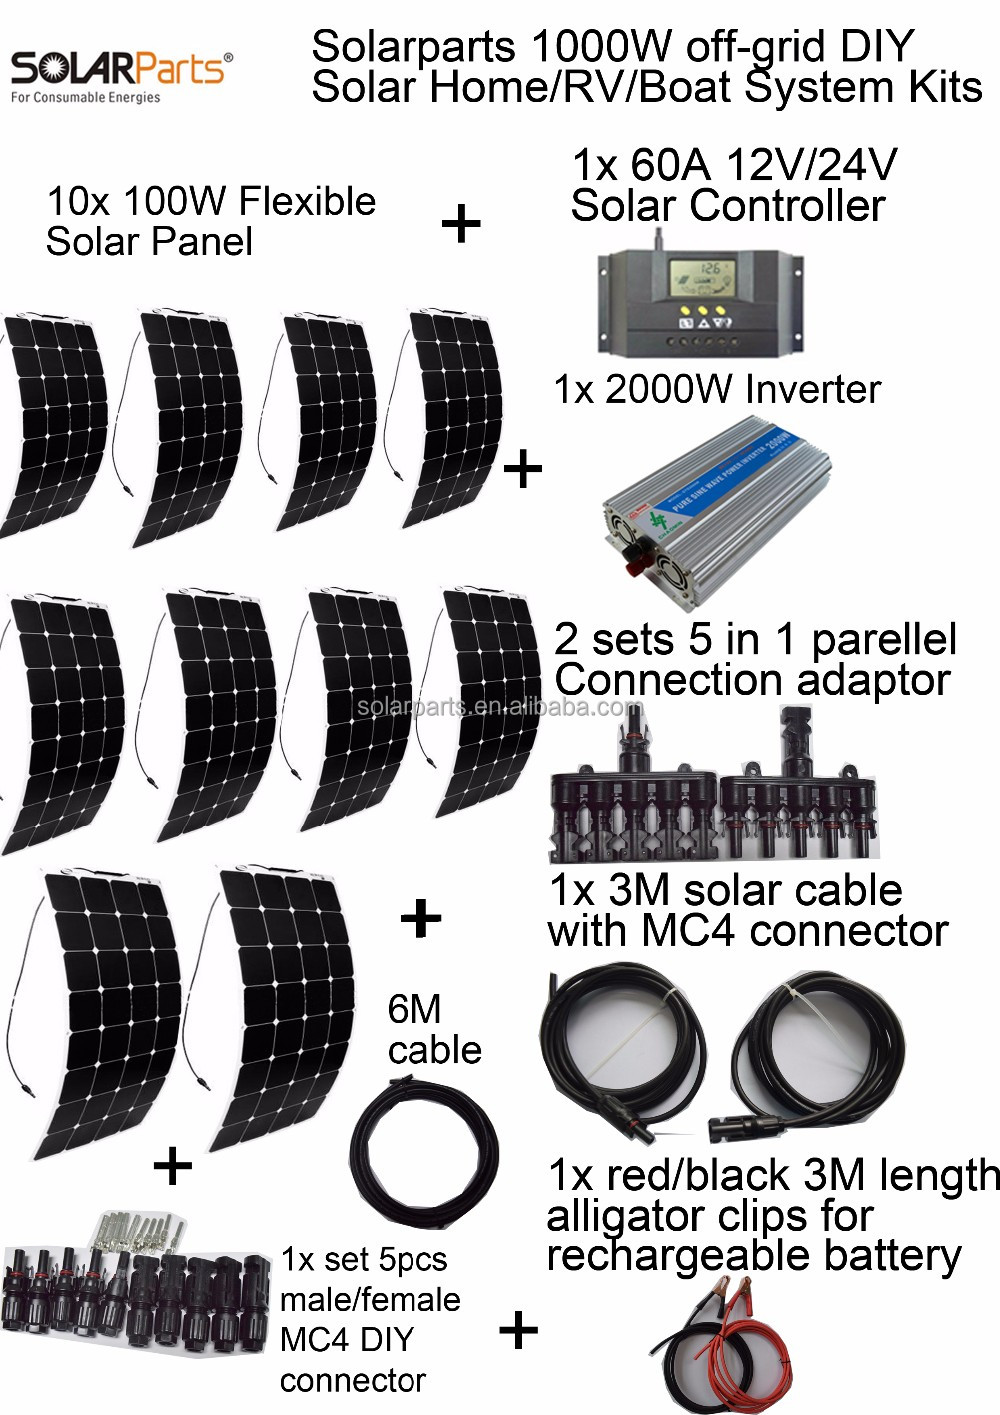 1000W flexible solar panel system for boats, yachts, marine